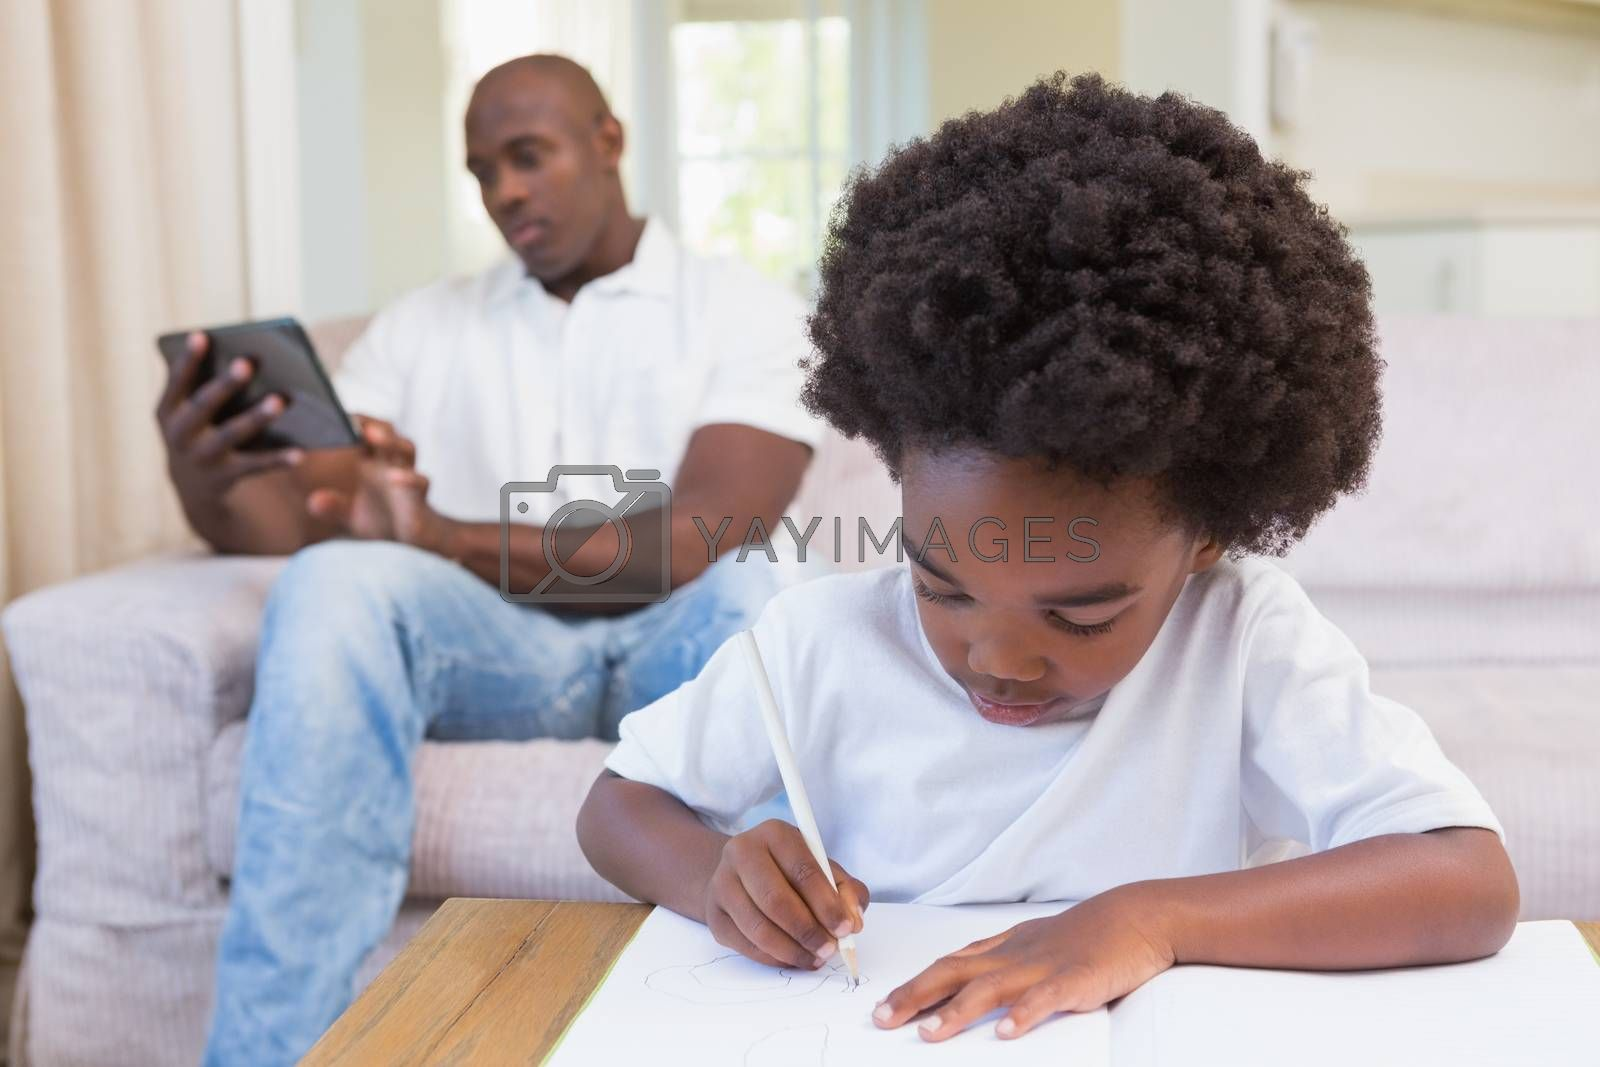 Royalty free image of A little boy writing on notepad by Wavebreakmedia